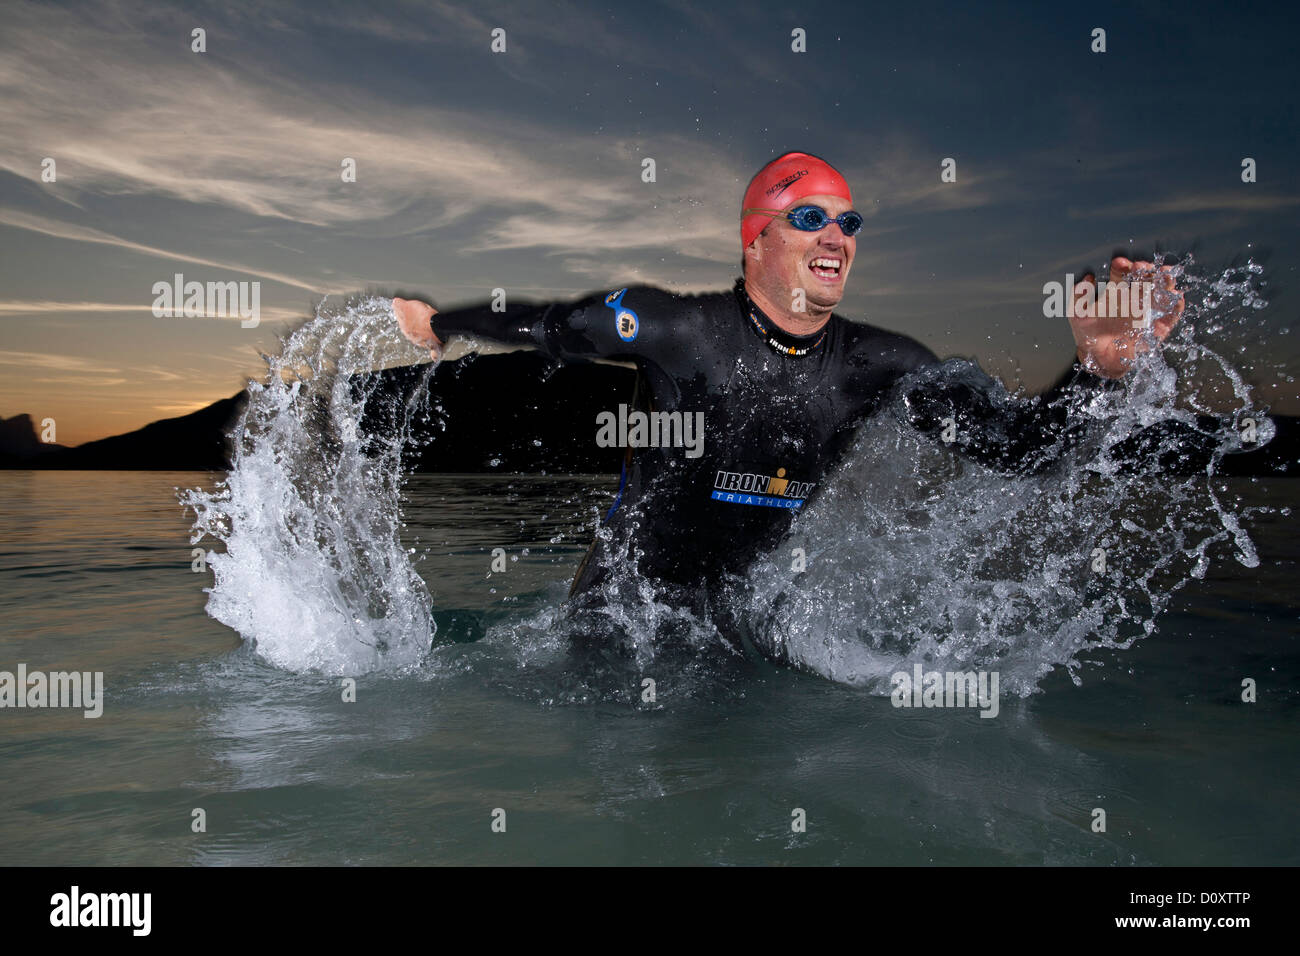 Austria, Europe, Ironman, man, sport, swimming suit, swimming, lake, Attersee, extreme sport, triathlon - Stock Image